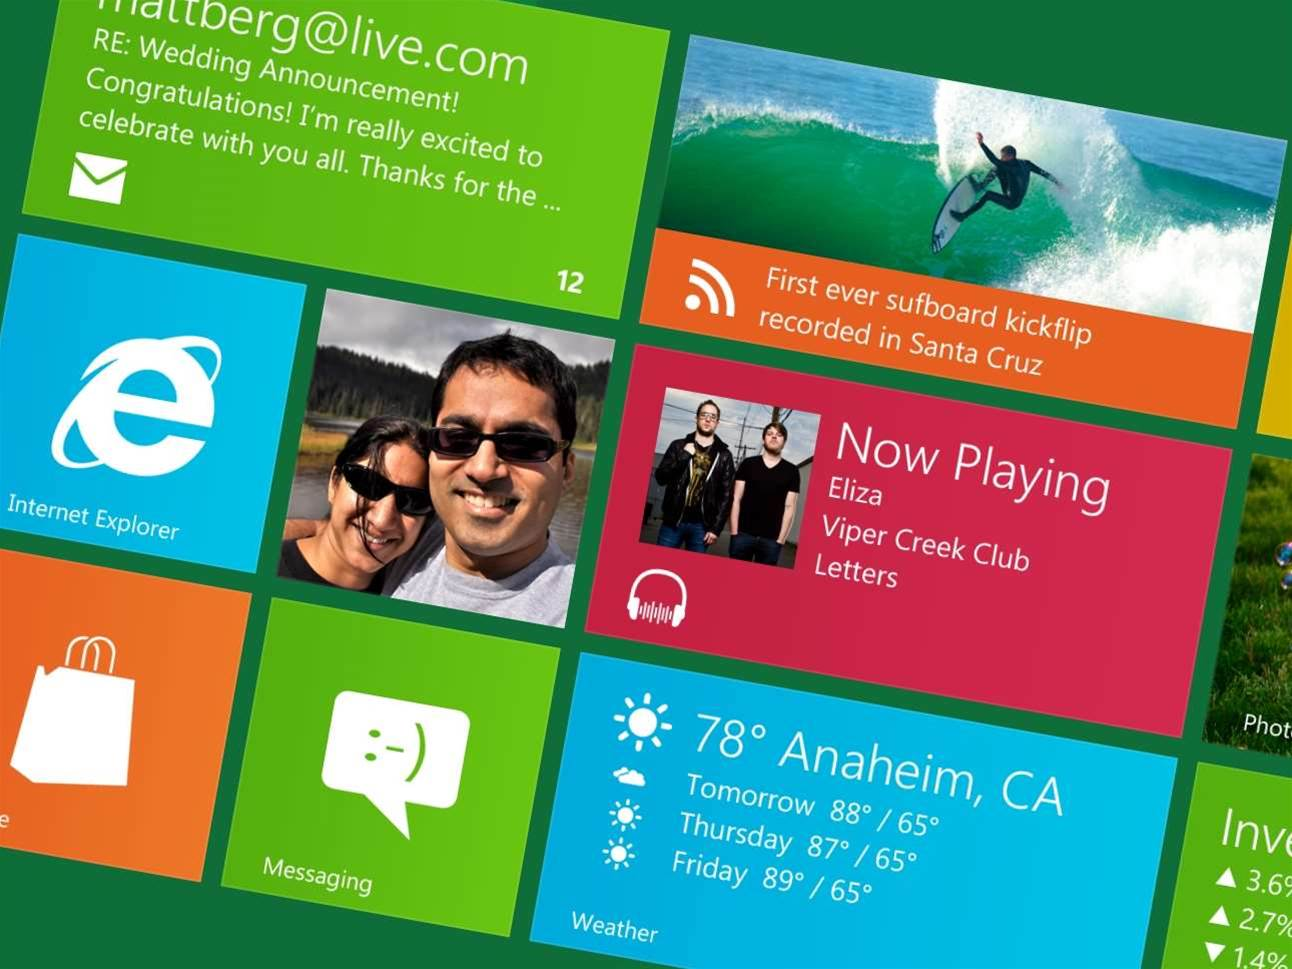 Opinion: the iPad 3 has a serious rival in Windows 8